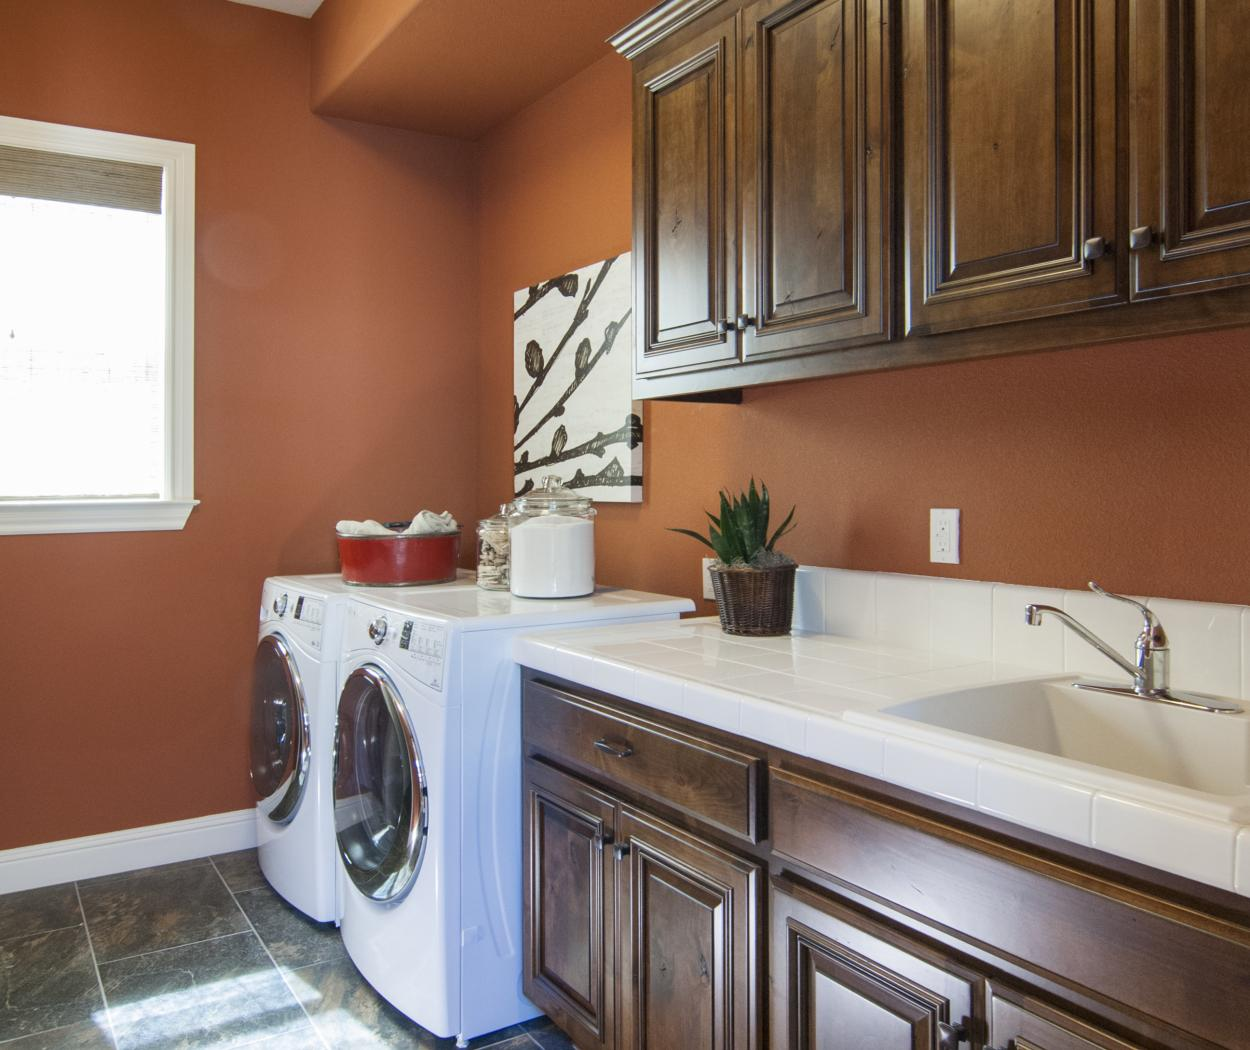 Beautiful Traditional, Knotty Alder Laundry Room Cabinets with a White Counter Top and White Appliances